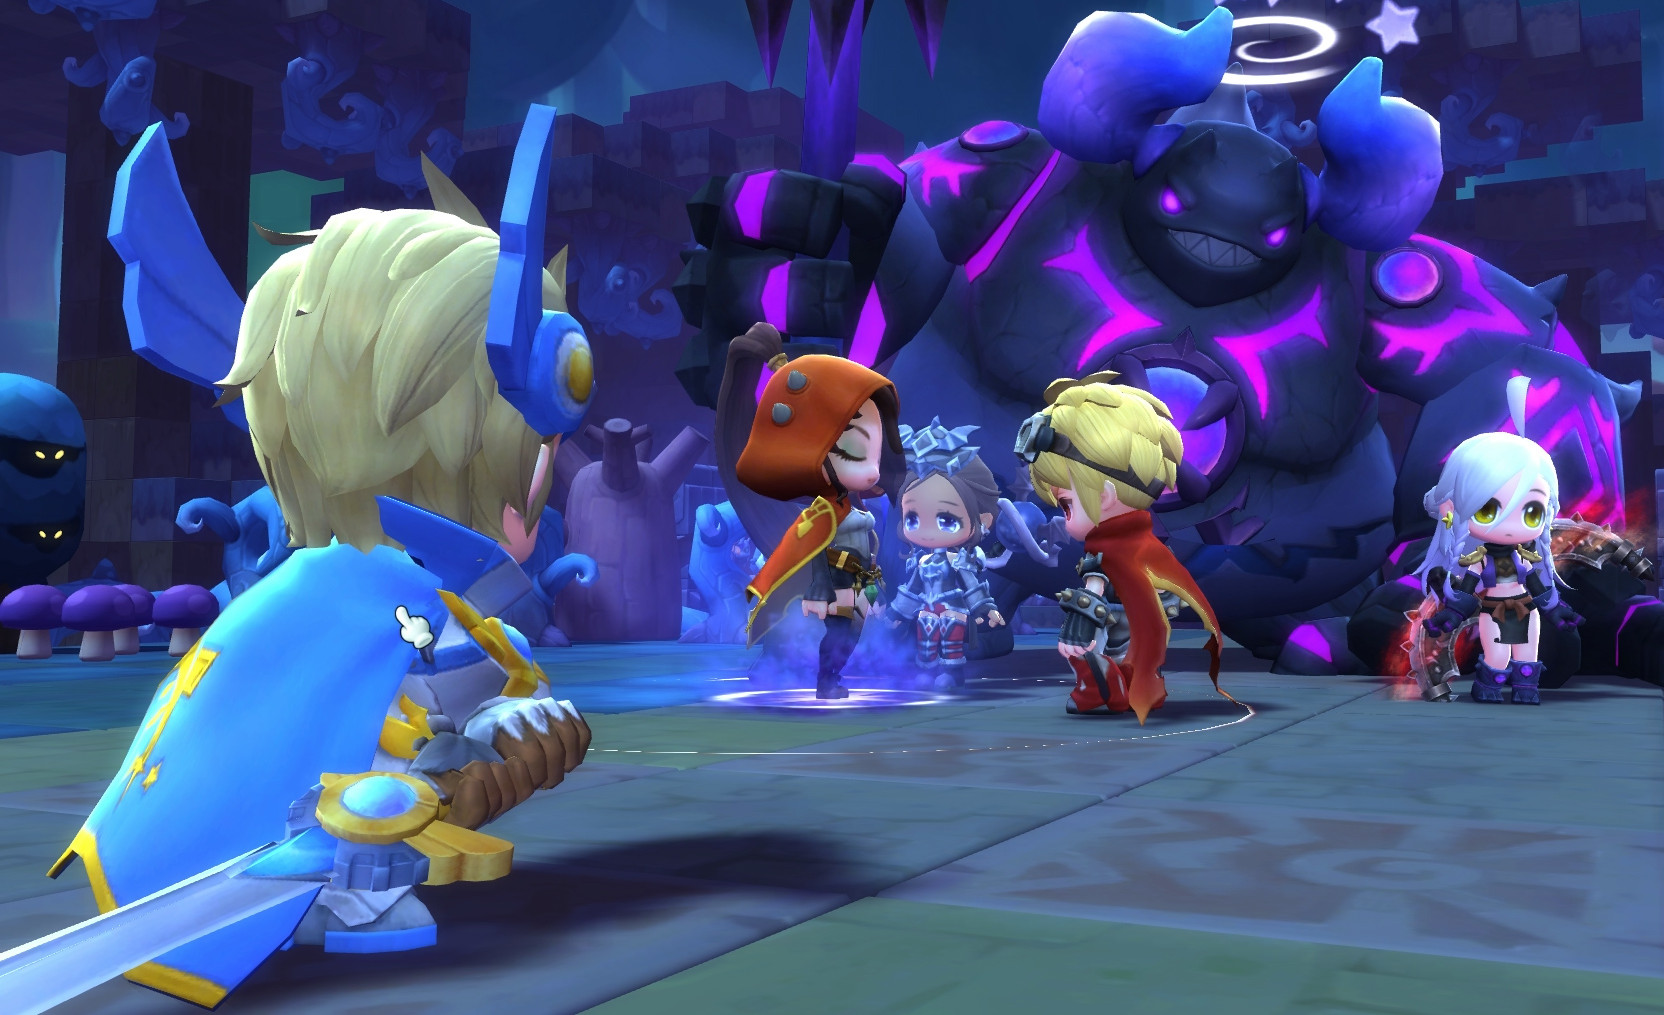 Coming Soon: MapleStory 2! | Official MapleStory 2 Website